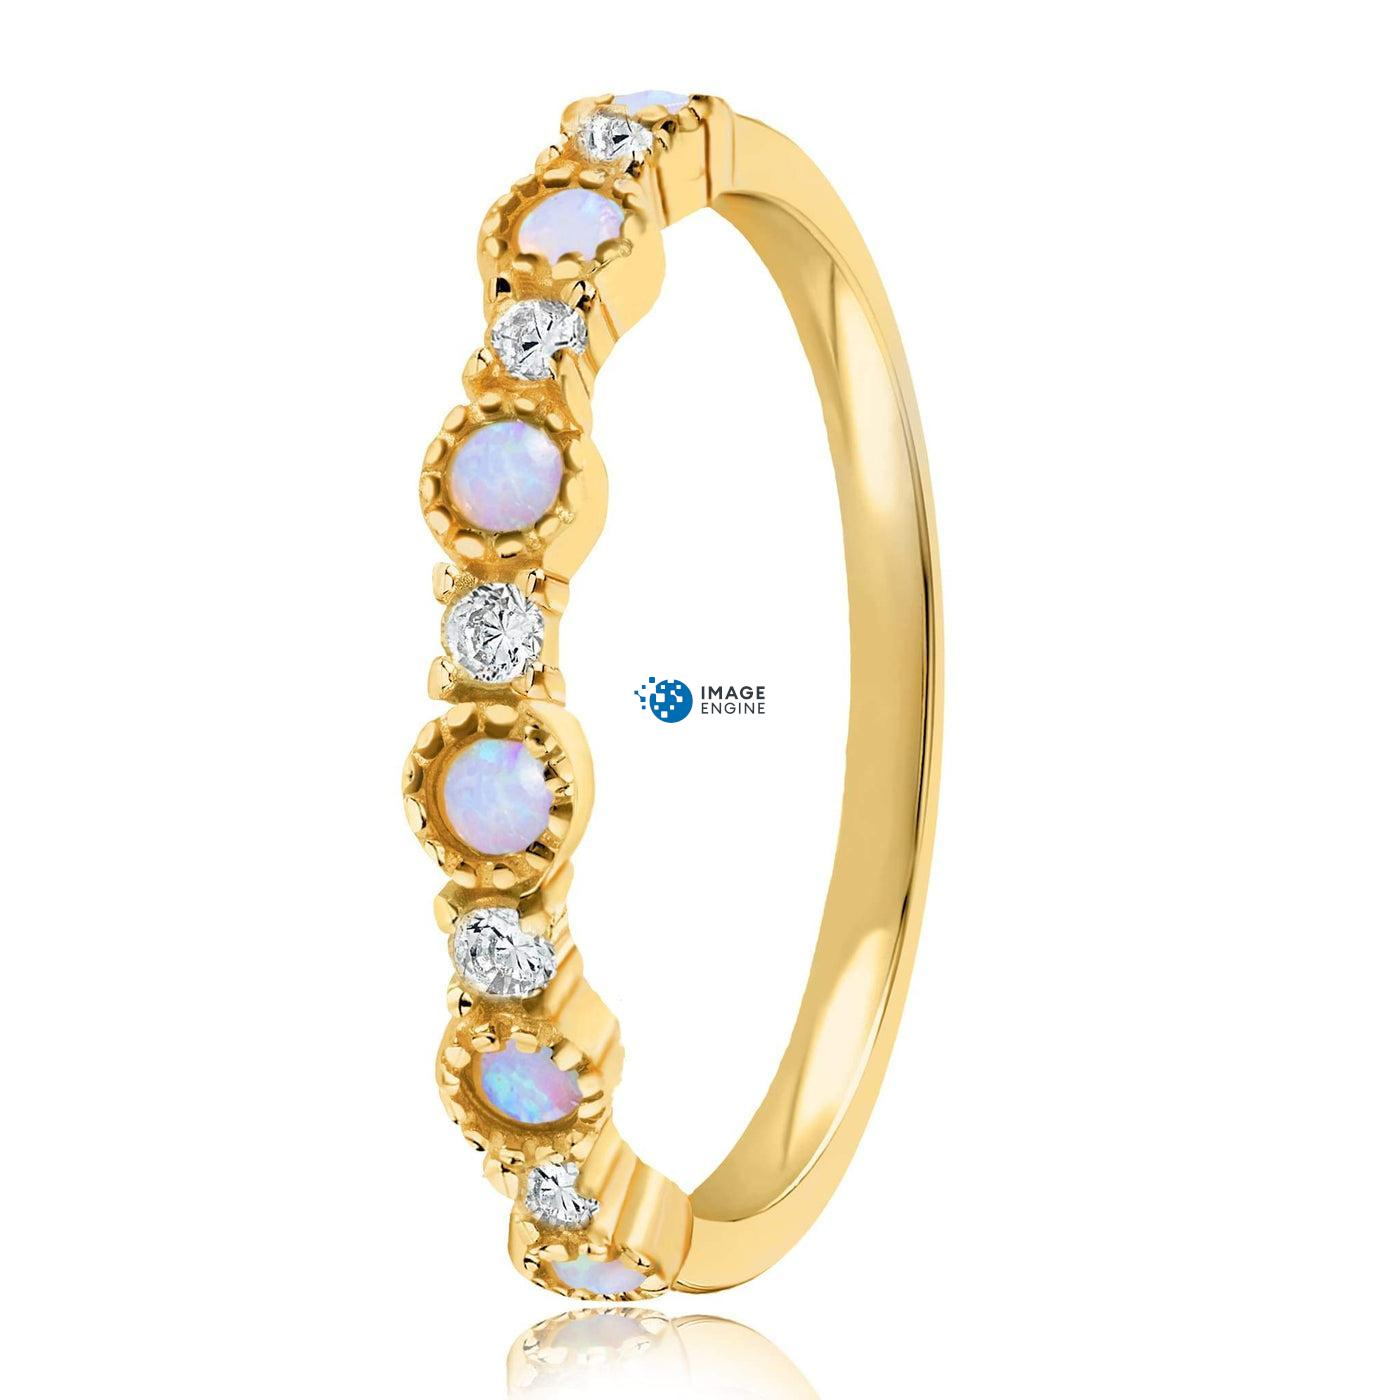 Debra Dots Opal Ring - Side View - 18K Yellow Gold Vermeil